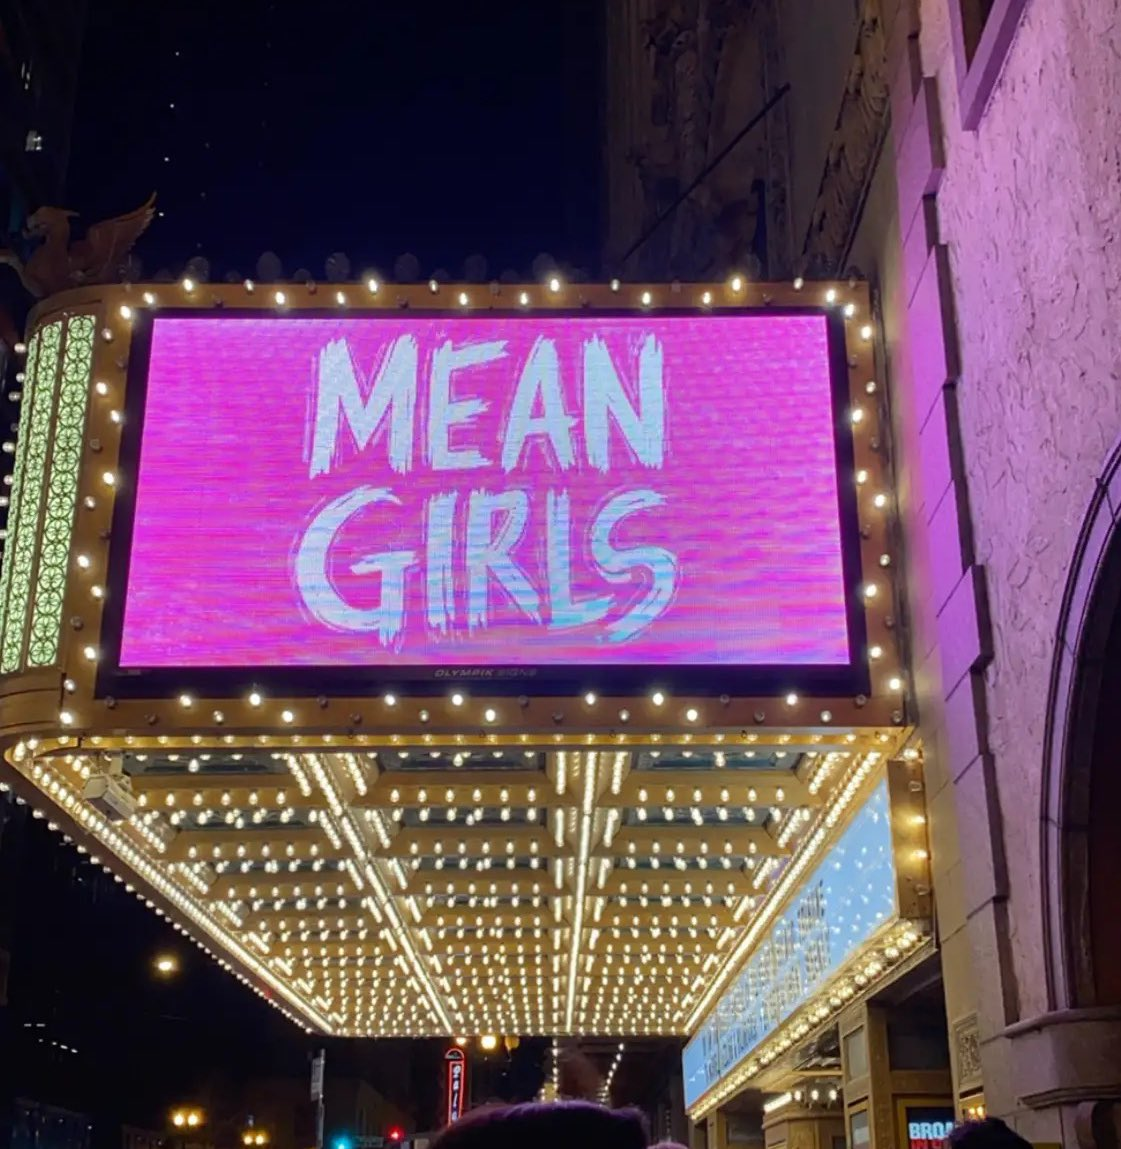 This was worth being super tired for work tomorrow. #SoFetch @MeanGirlsBway